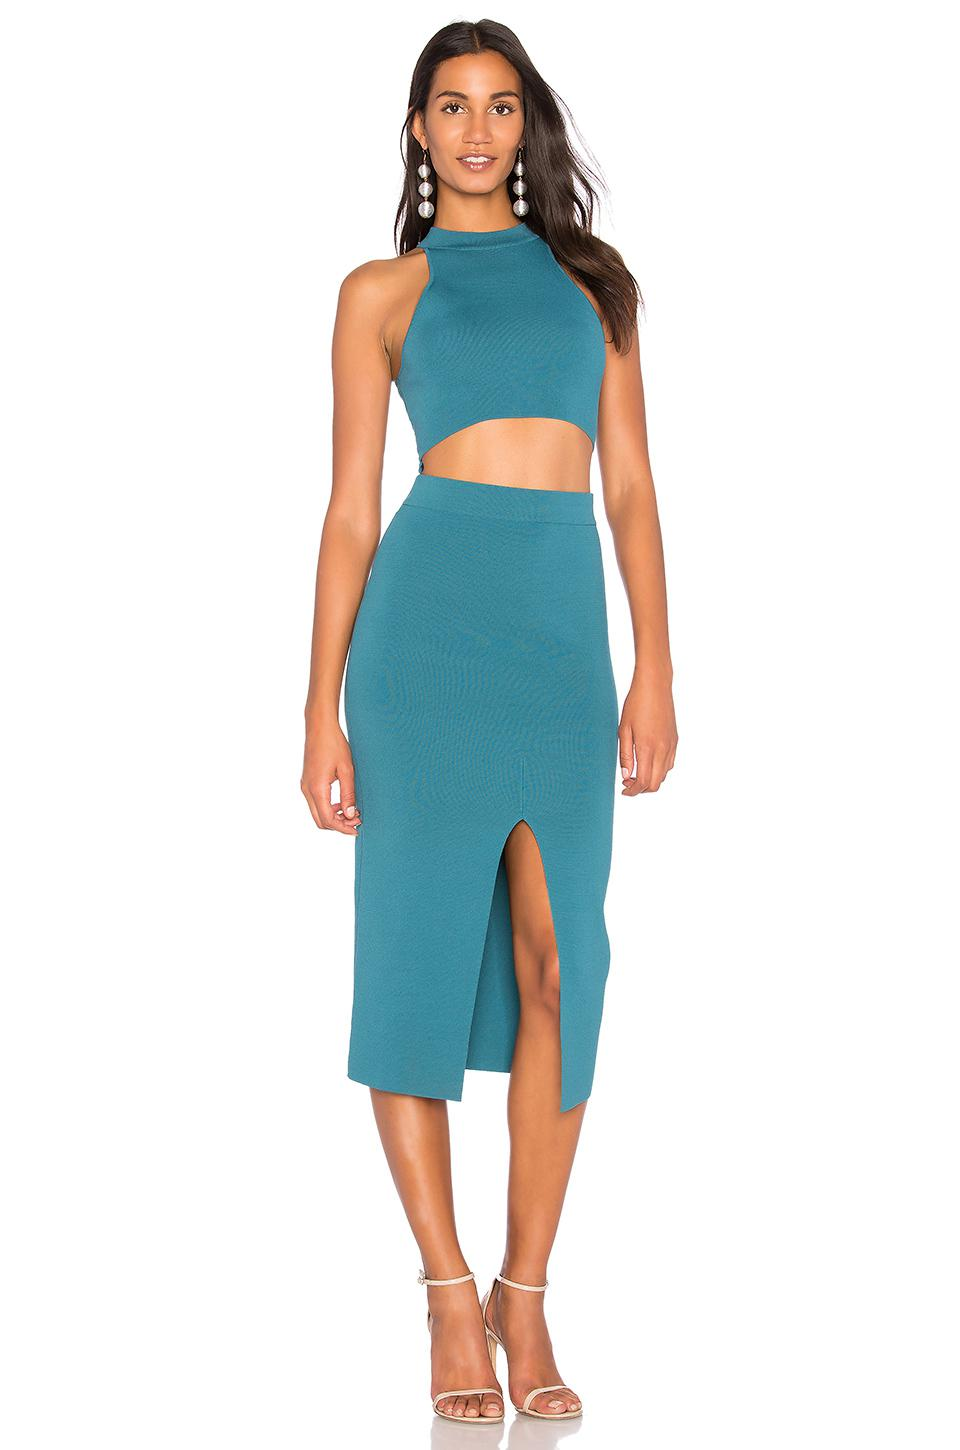 Lyst - Endless Rose Cut Out Knit Bodycon Dress in Blue